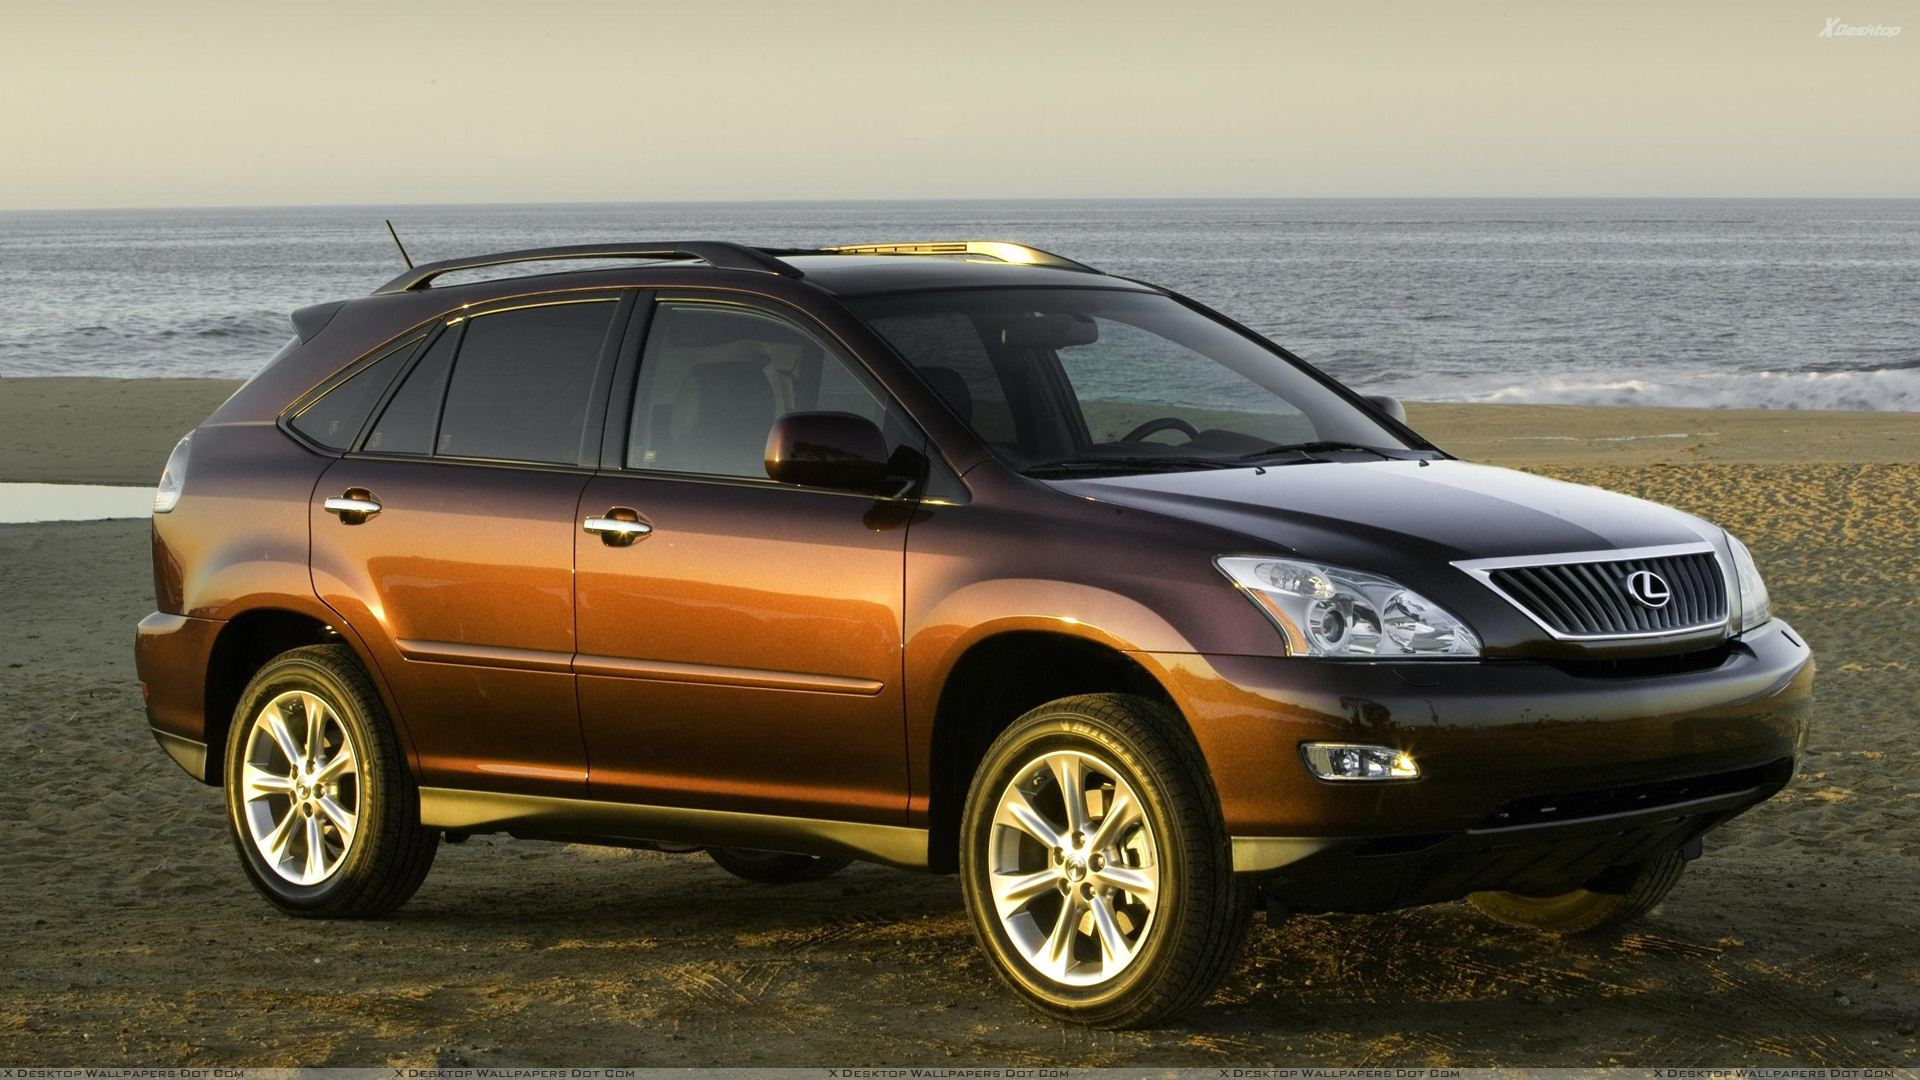 2009 Lexus RX 350 In Brown At Sea Side Photoshoot Wallpaper